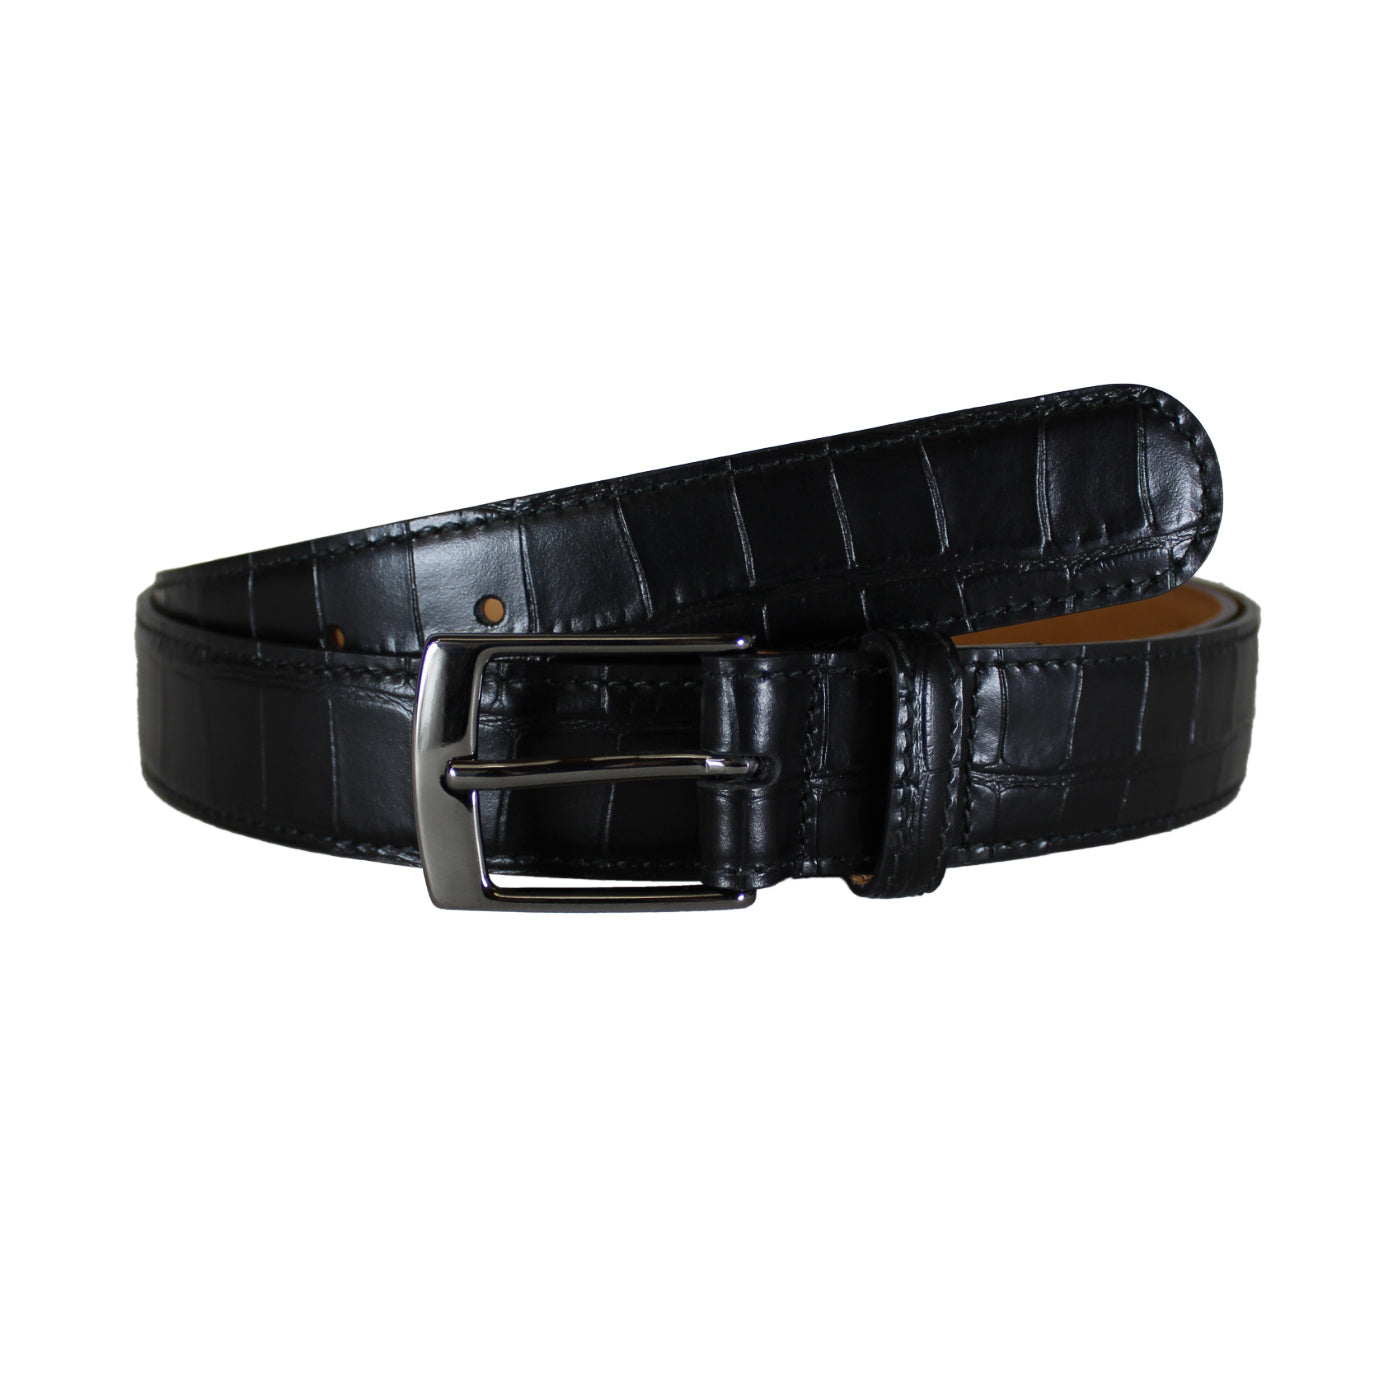 "Croccodile Stamp Black Dress Vegetable Tanned Leather Belt (Width 30mm - 1¼"")"